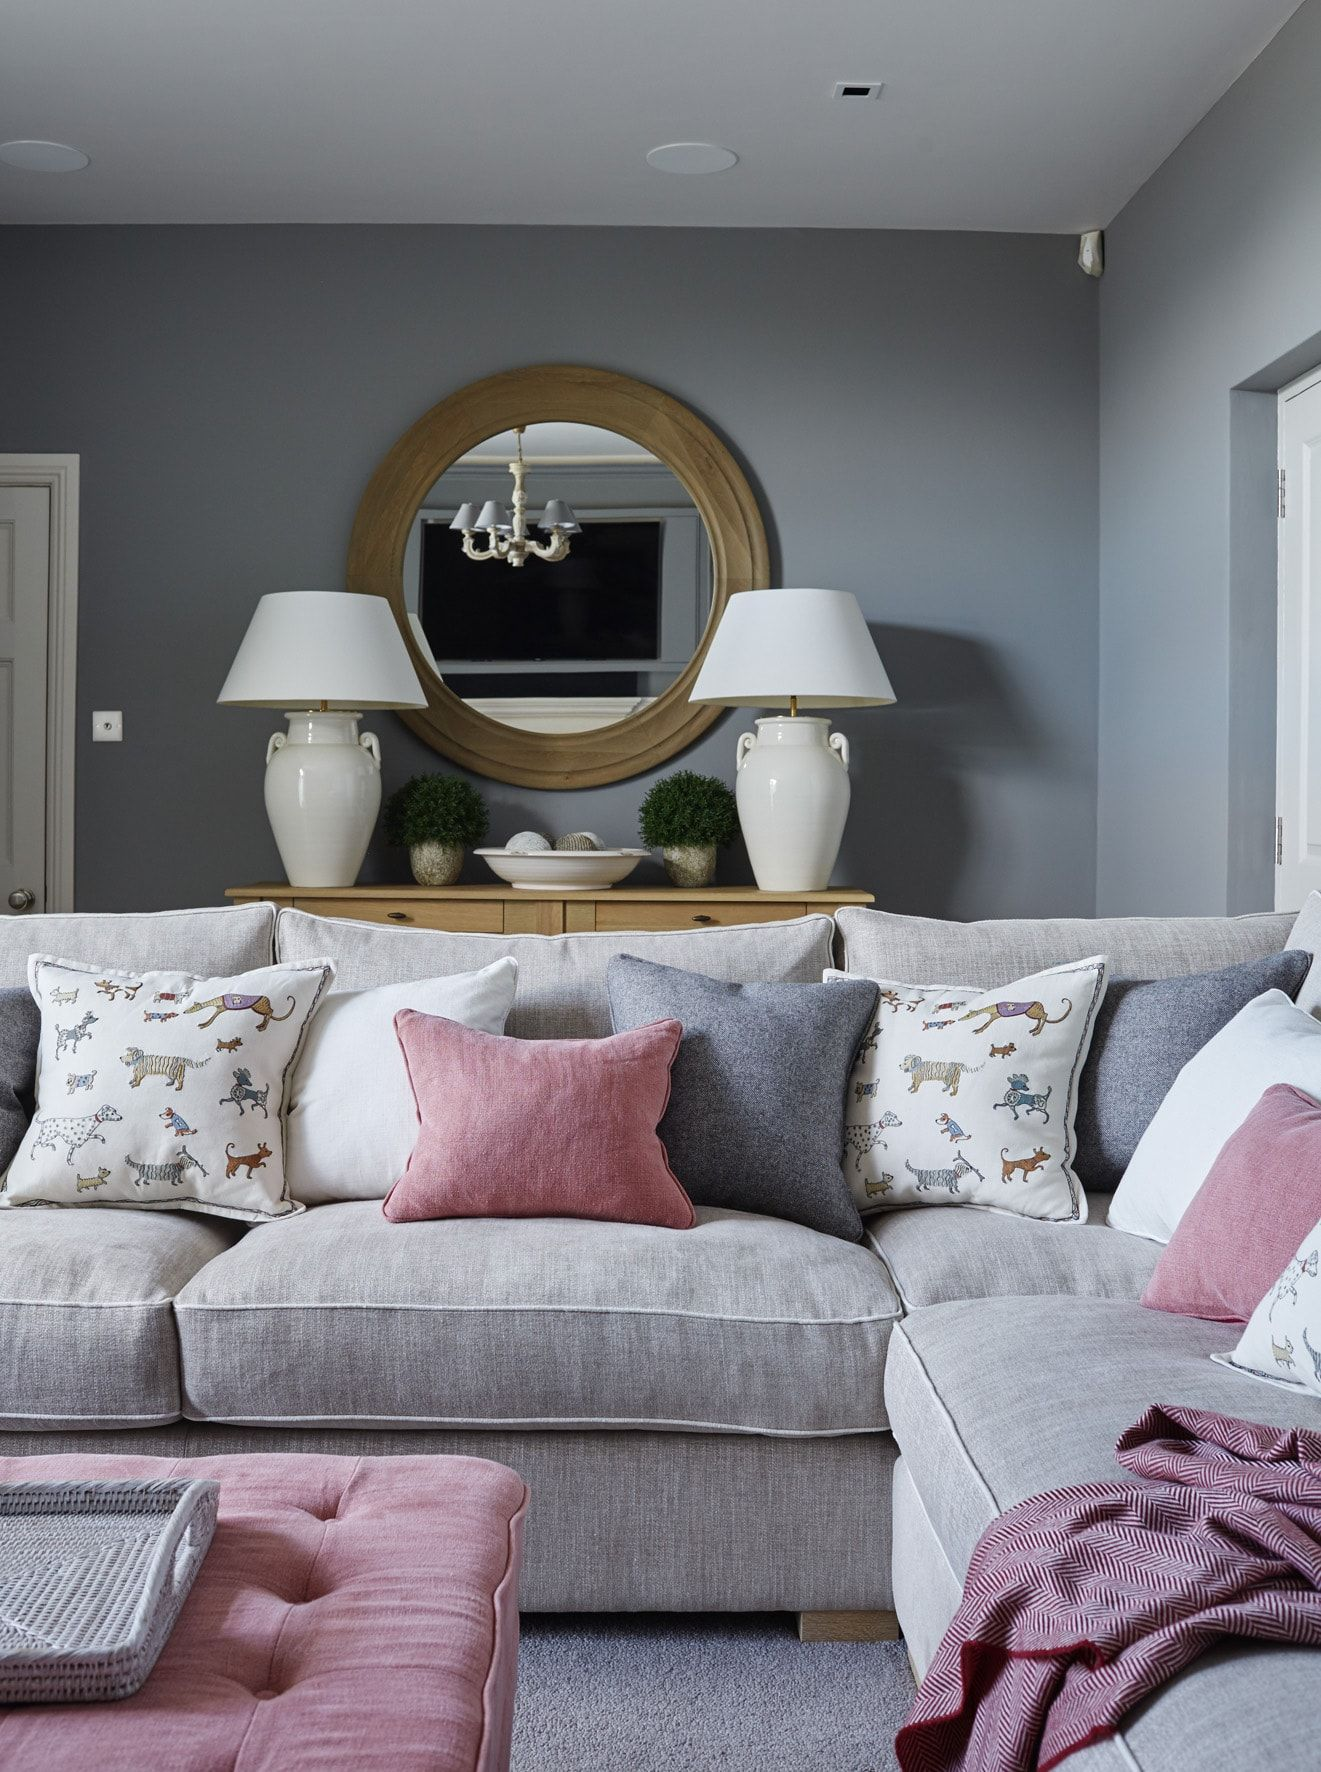 Living Room Color Design For Small House: Sims Hilditch The Old Farmhouse Snug / Cinema Room With